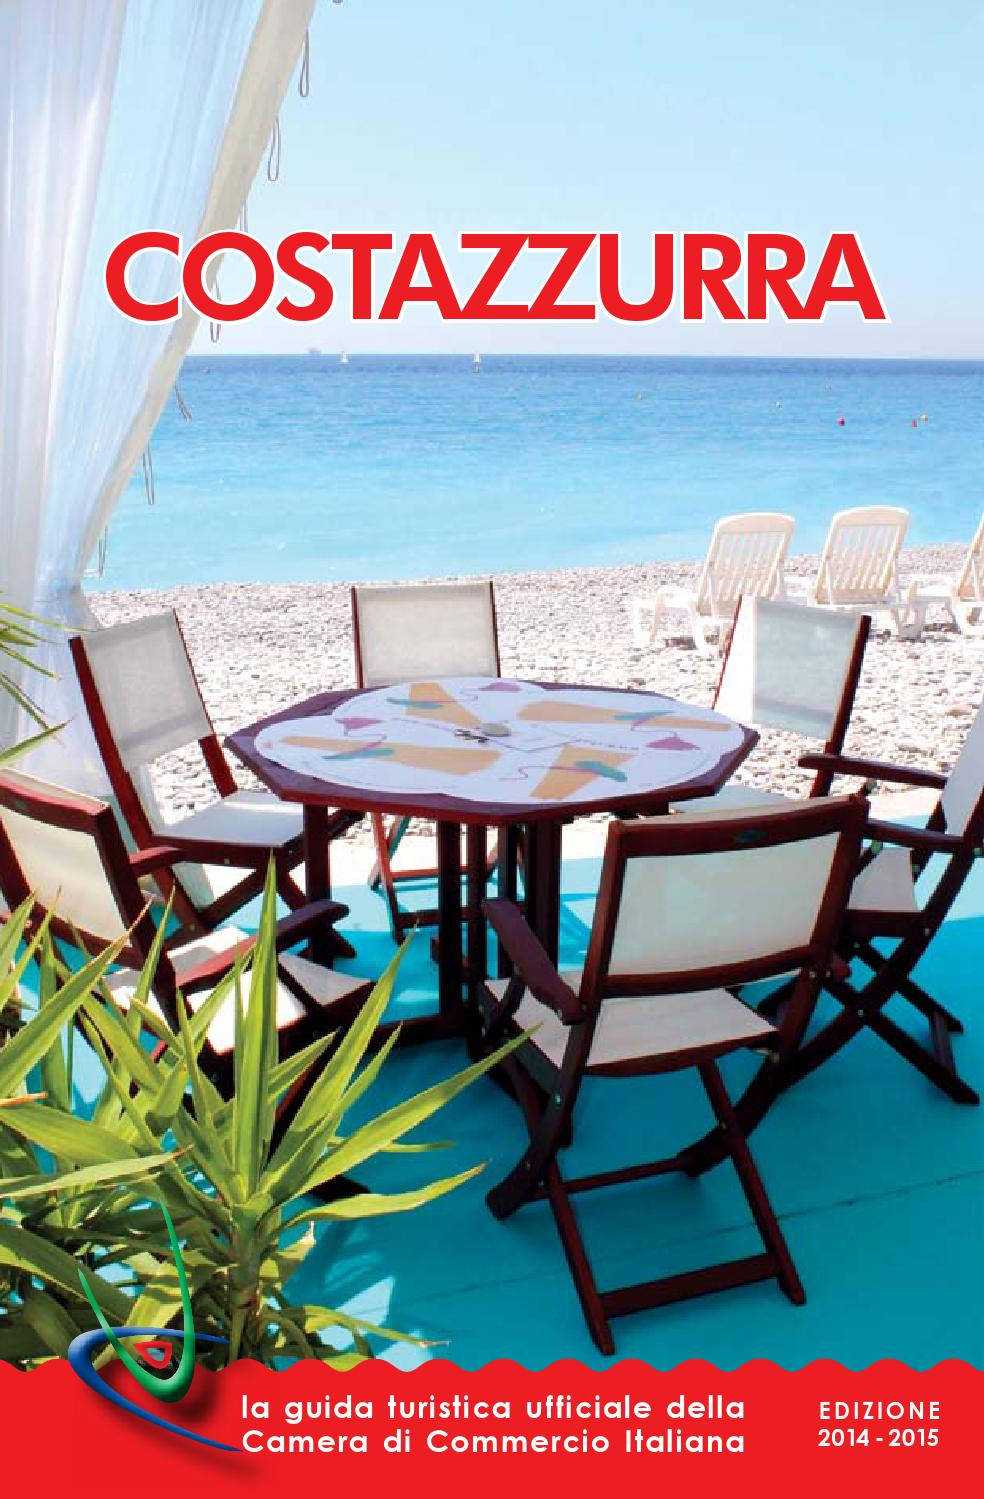 Issuu guida turistica costazzurra 2014 by chambre de for Chambre de commerce nice